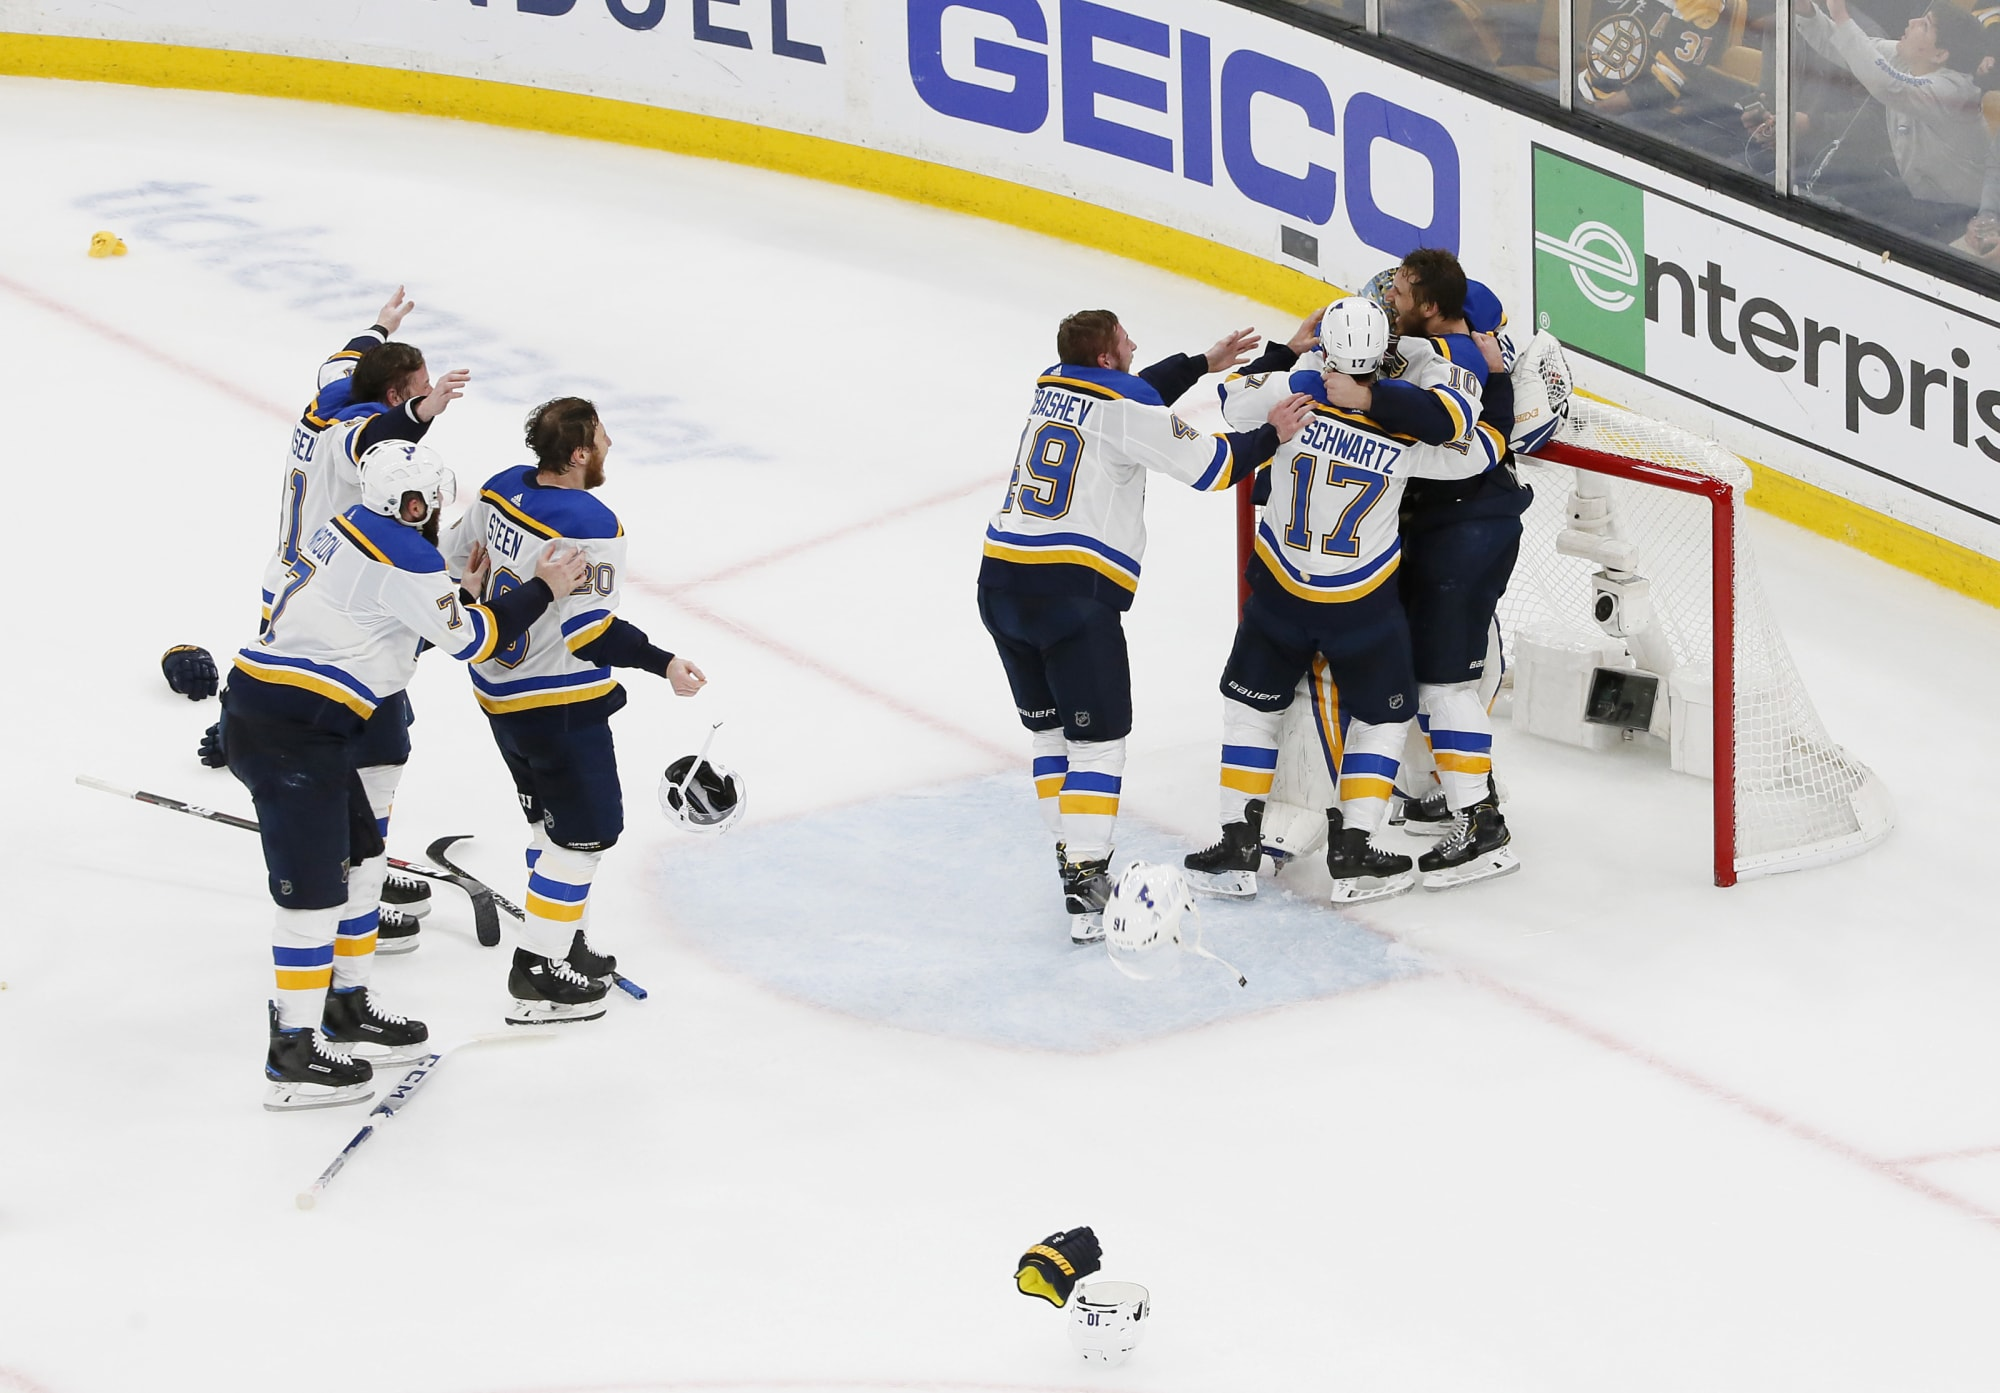 Twitter reacts to Blues unlikely Stanley Cup victory